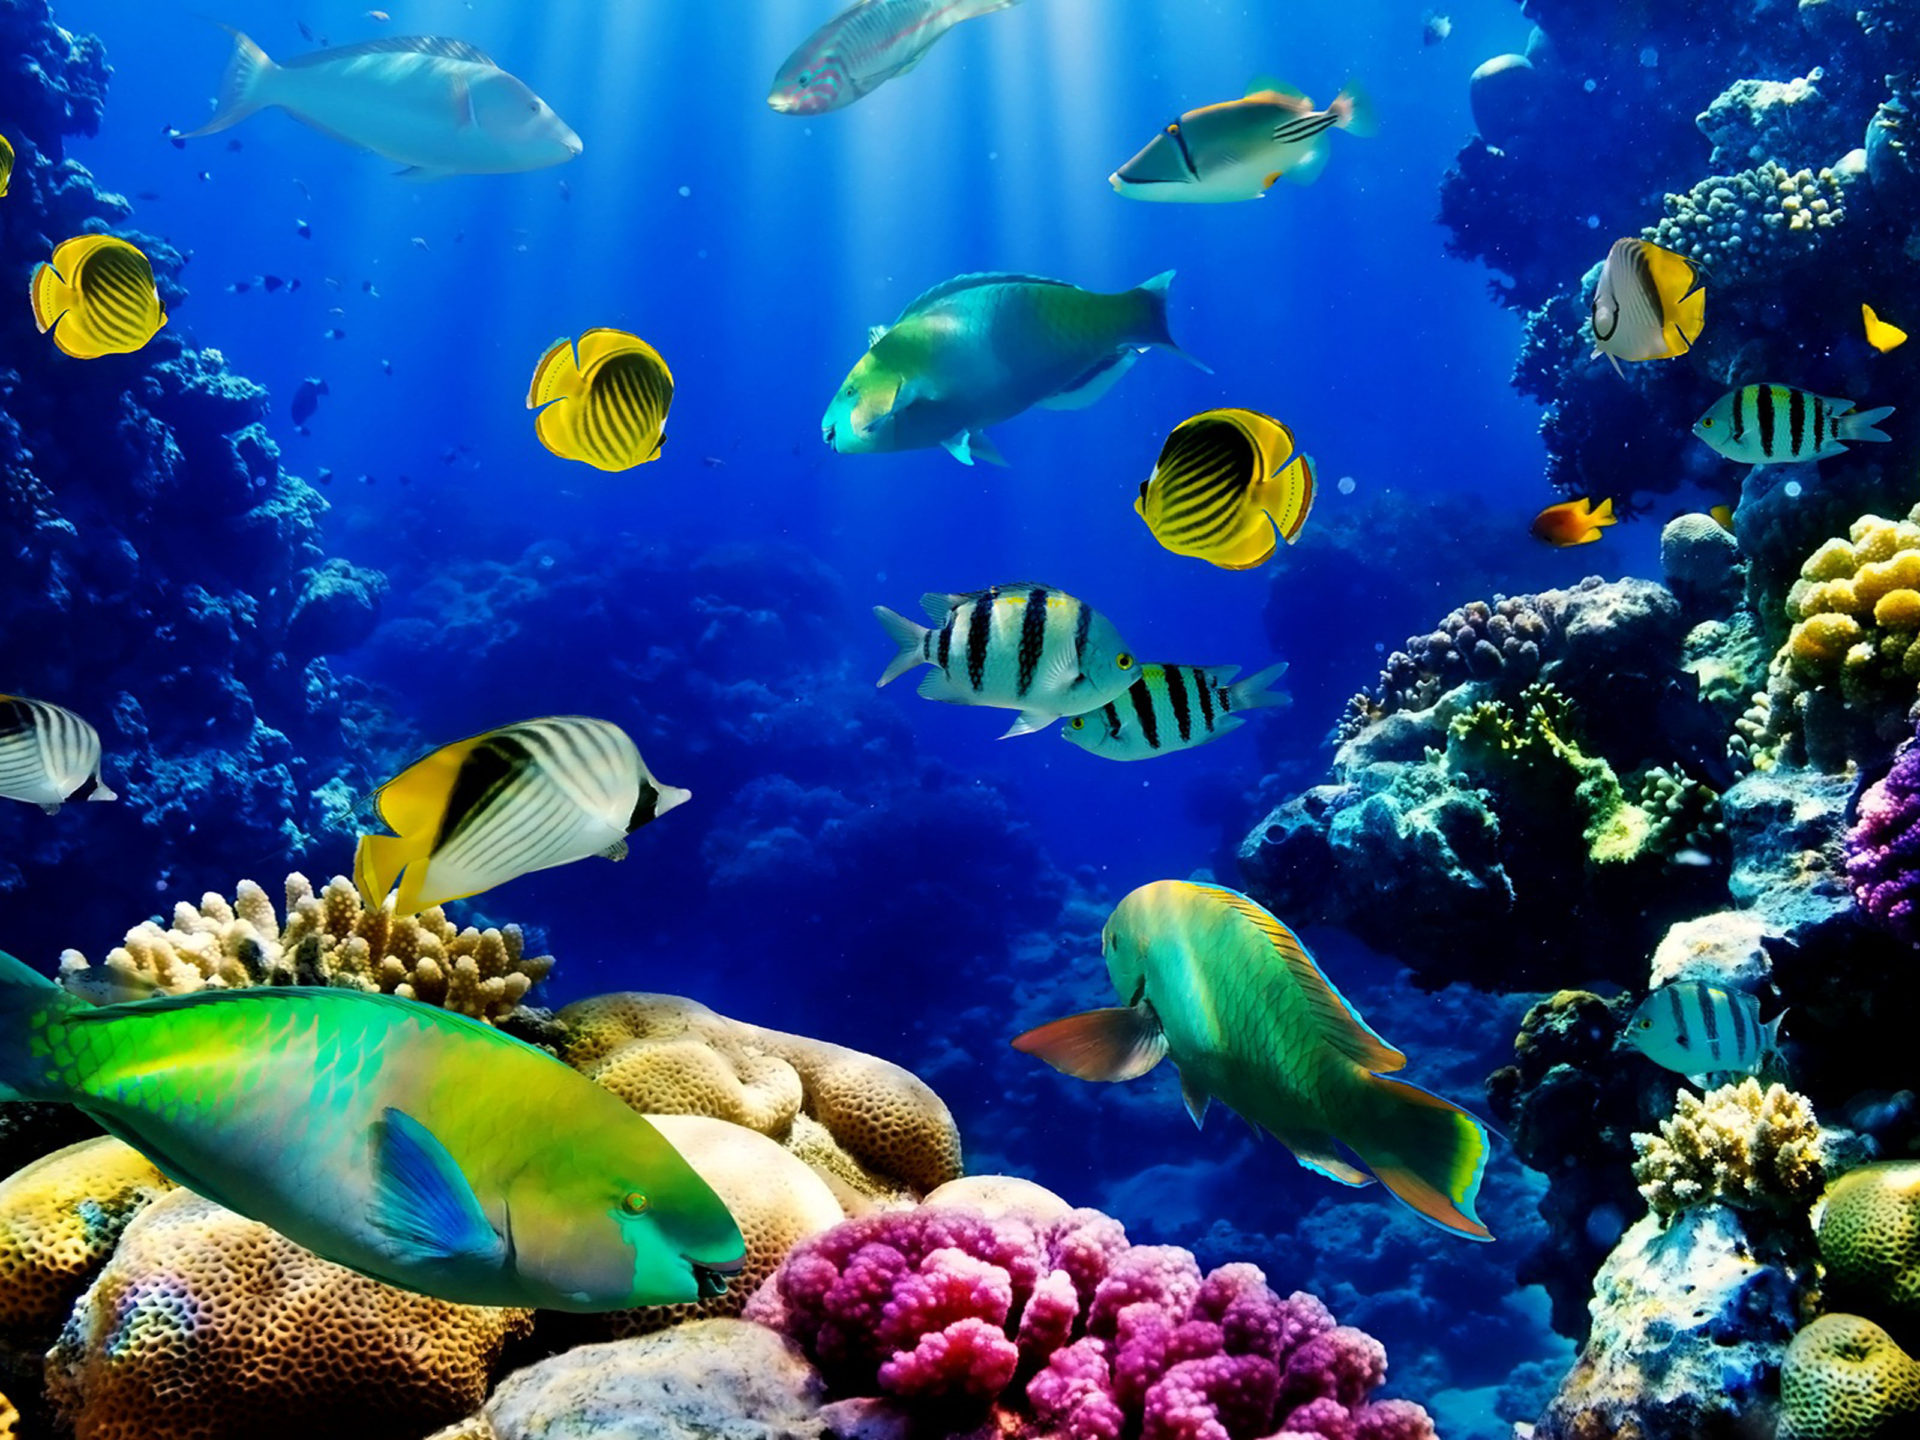 Hd Fish Live Wallpaper For Pc Fish Ocean Seabed Tropical Reef Coral Hd Wallpaper